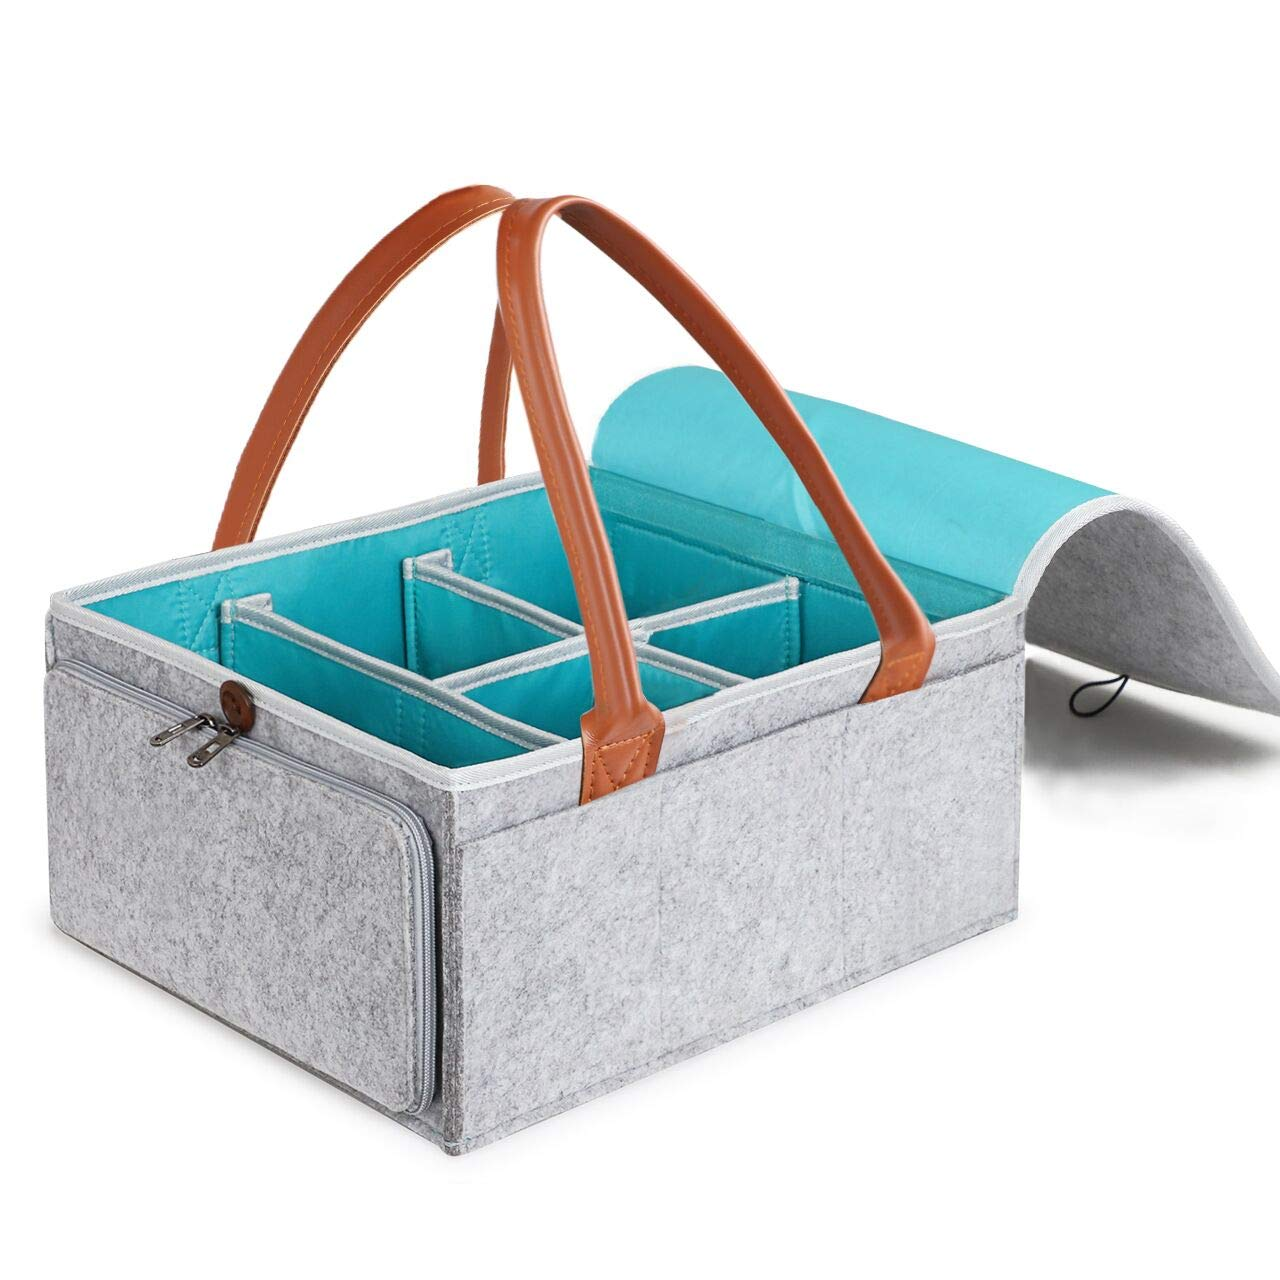 Syntus Baby Diaper Caddy Organizer Large Nursery Storage Bin Portable Car Travel Organizer Tote Bag for Diapers and Baby Wipes, Baby Shower Gift Basket for Boys Girls by Syntus